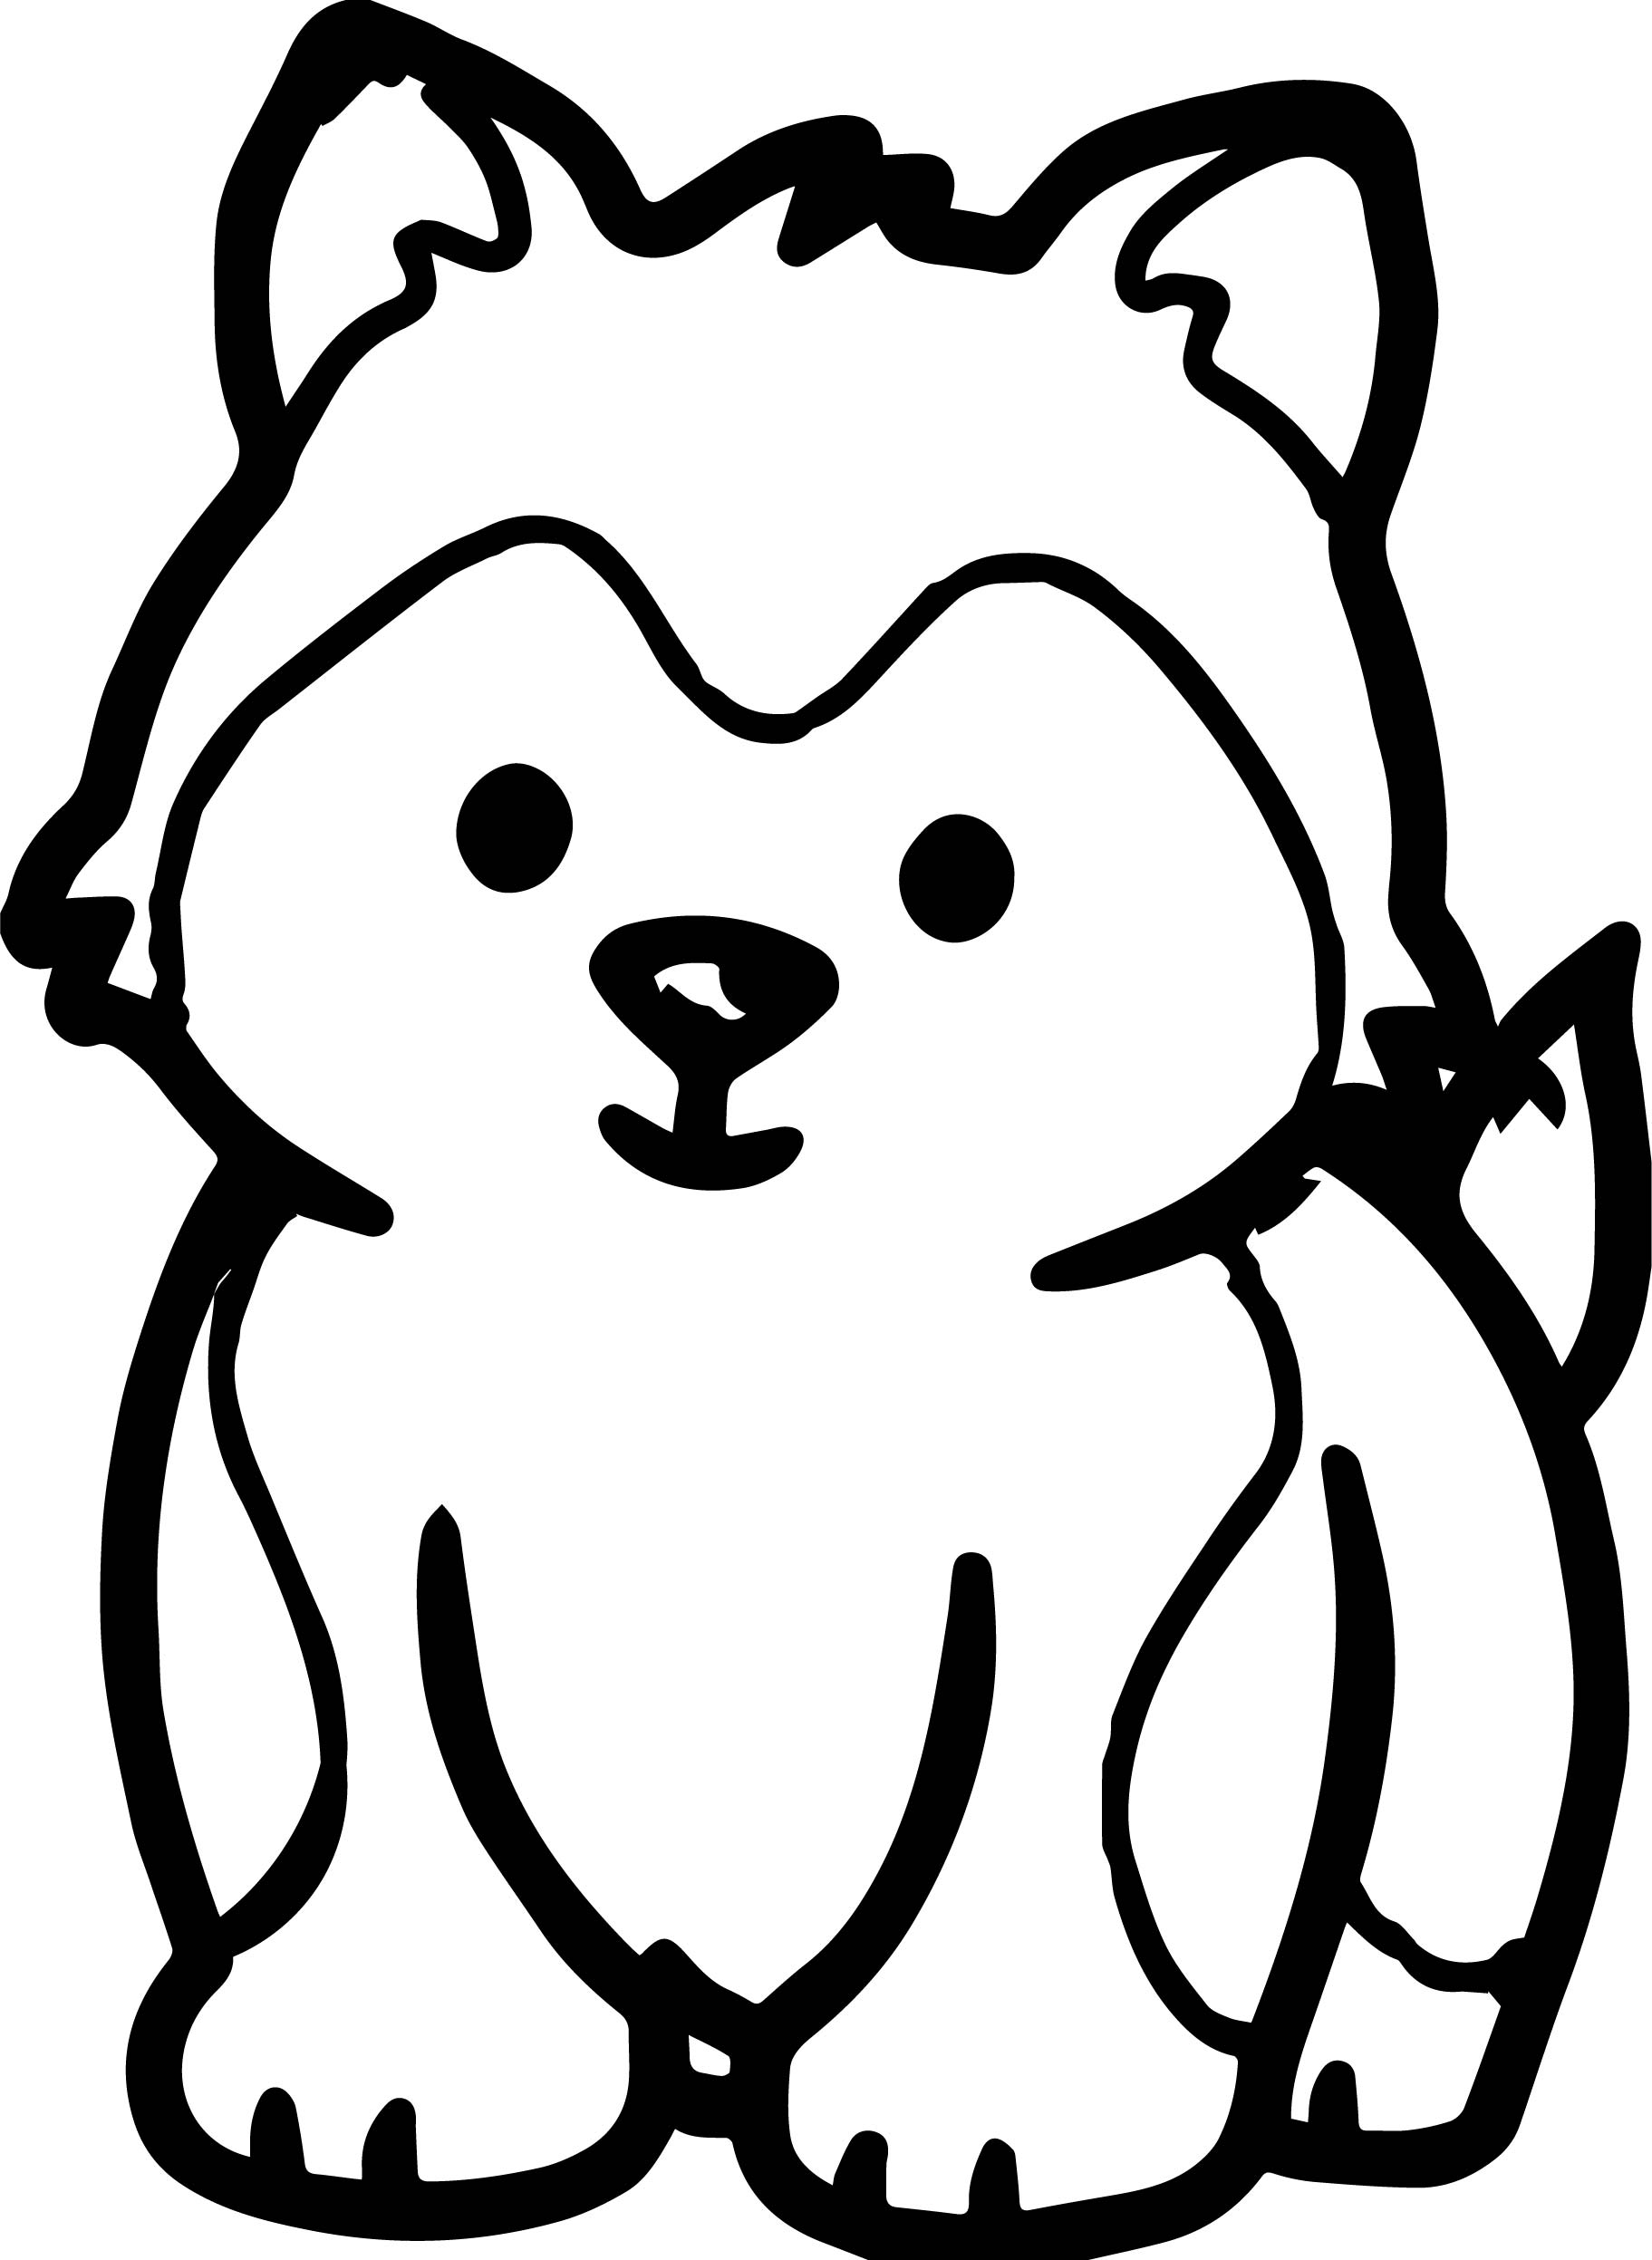 husky face coloring pages husky mask coloring page woo jr kids activities pages face husky coloring